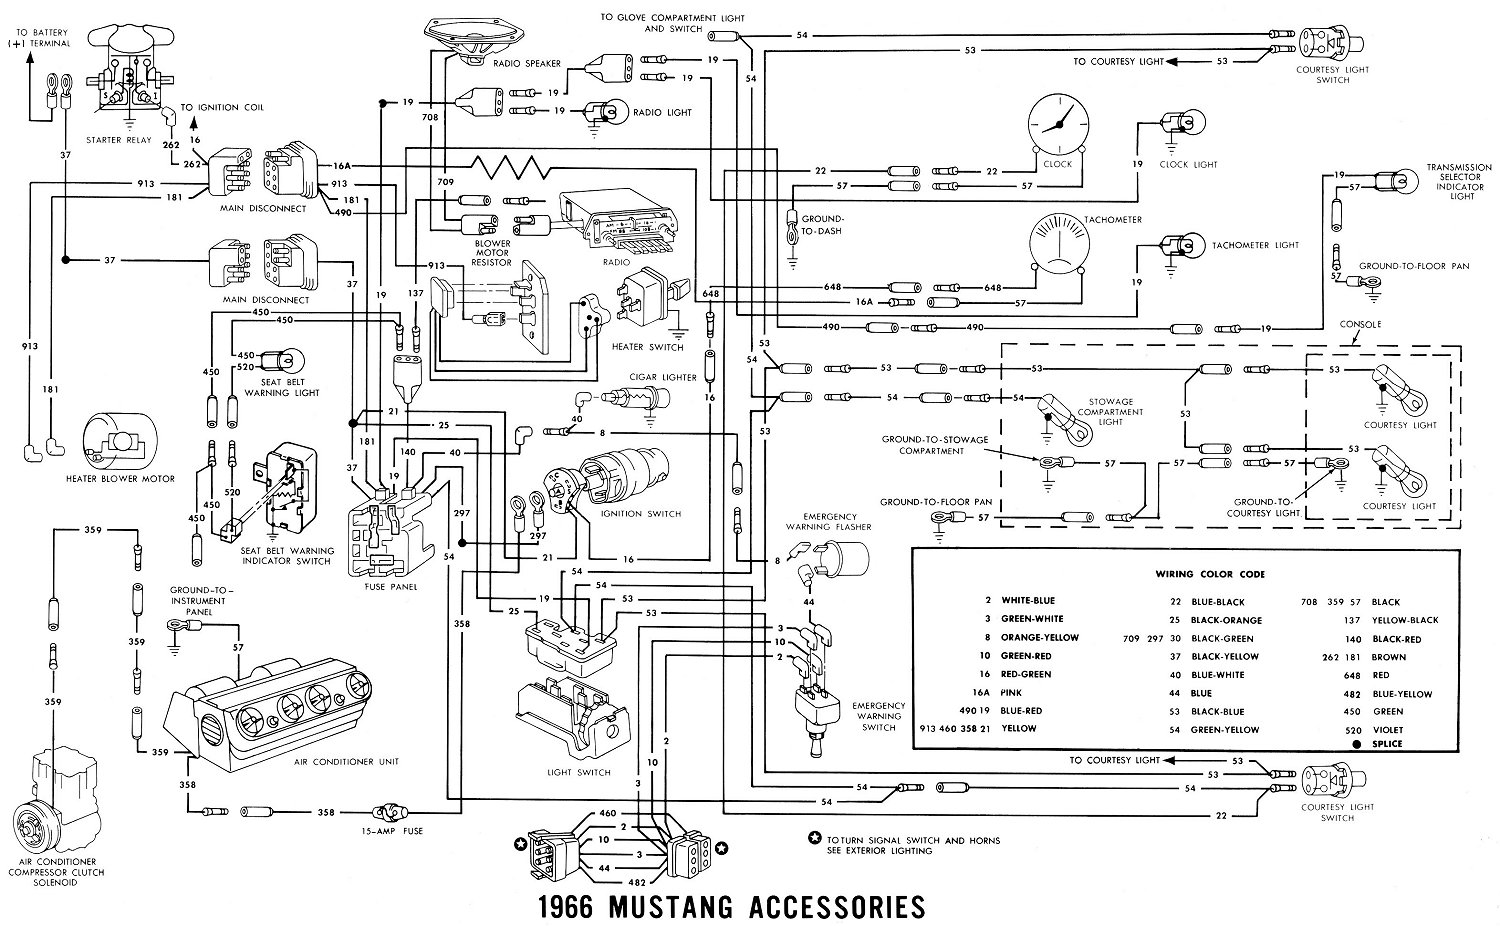 [QMVU_8575]  1966 Mustang Wiring Diagrams - Average Joe Restoration | 1966 Mustang Color Wiring Diagram |  | Average Joe Restoration